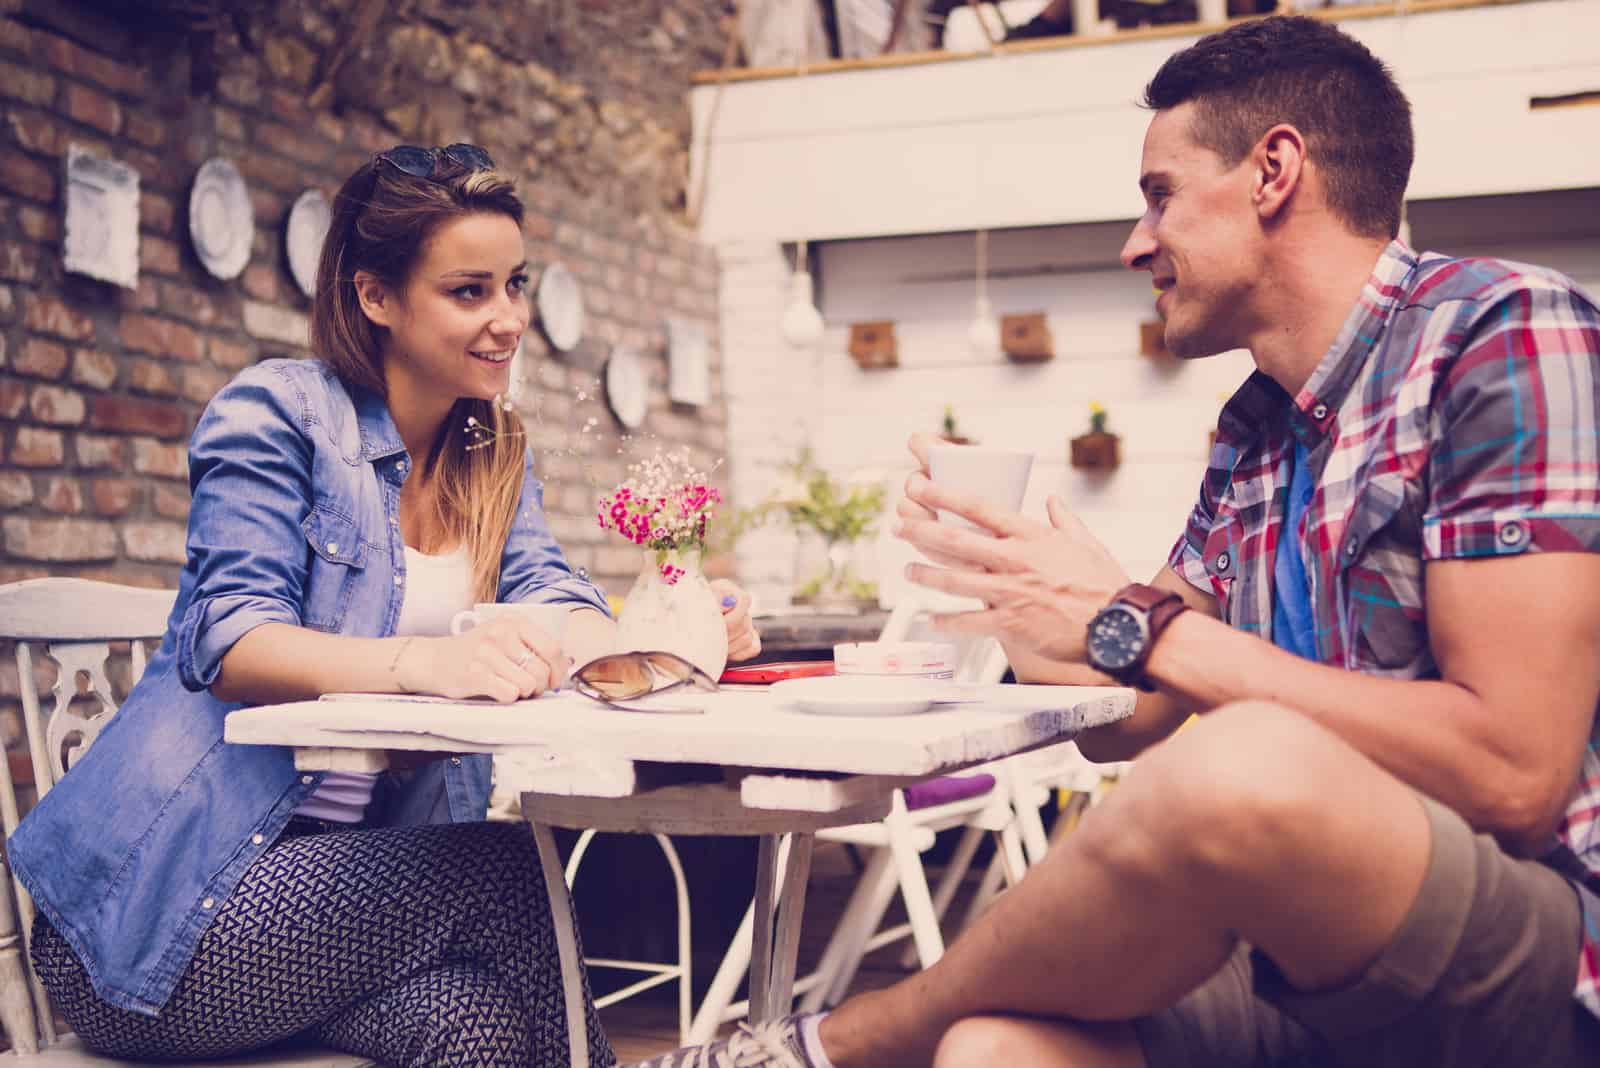 How To Keep A Conversation Going With A Girl In 17 Brilliant Ways